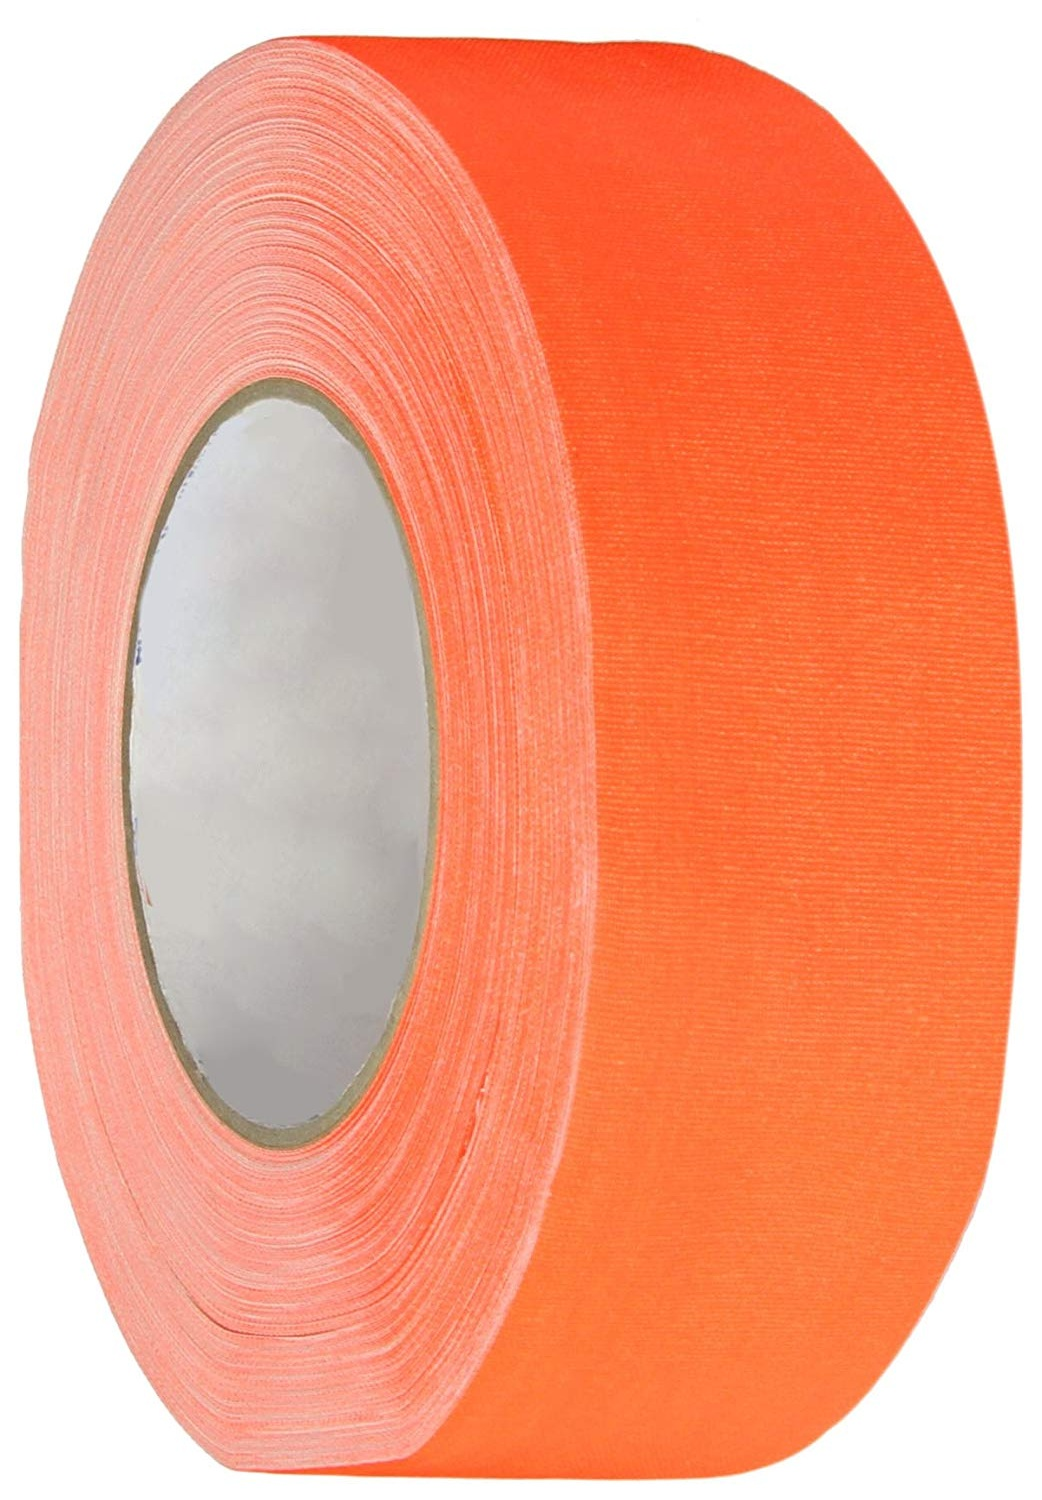 Polyken 510 Rubber Premium Grade Gaffer's Tape, 45m Length x 48mm Width, Neon Orange